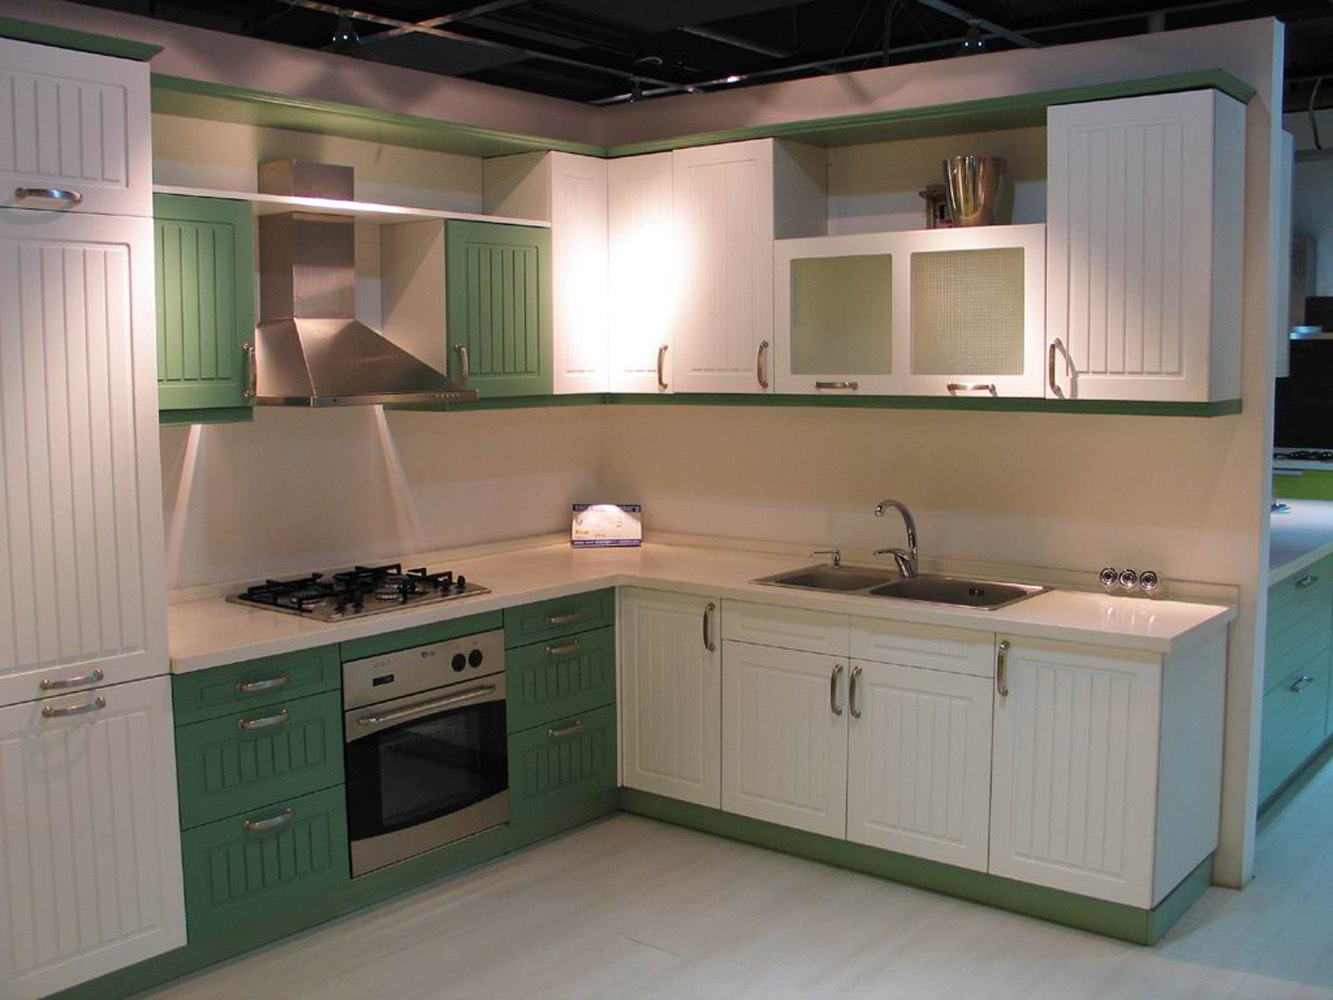 Mdf kitchen cabinets de thermofoil en double side foil - Cocinas de pvc ...